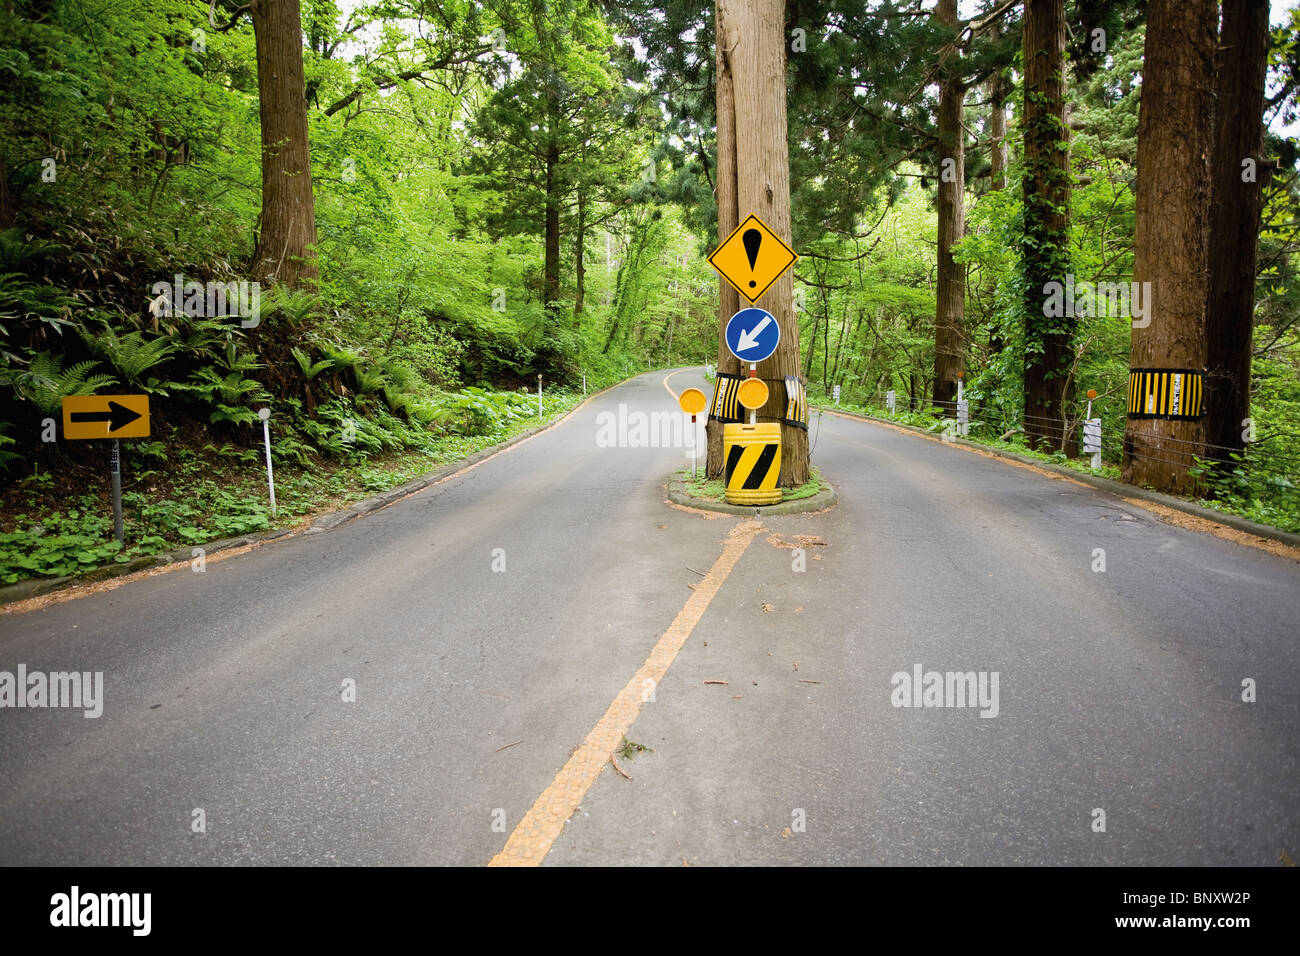 Tree growing in middle of road Stock Photo